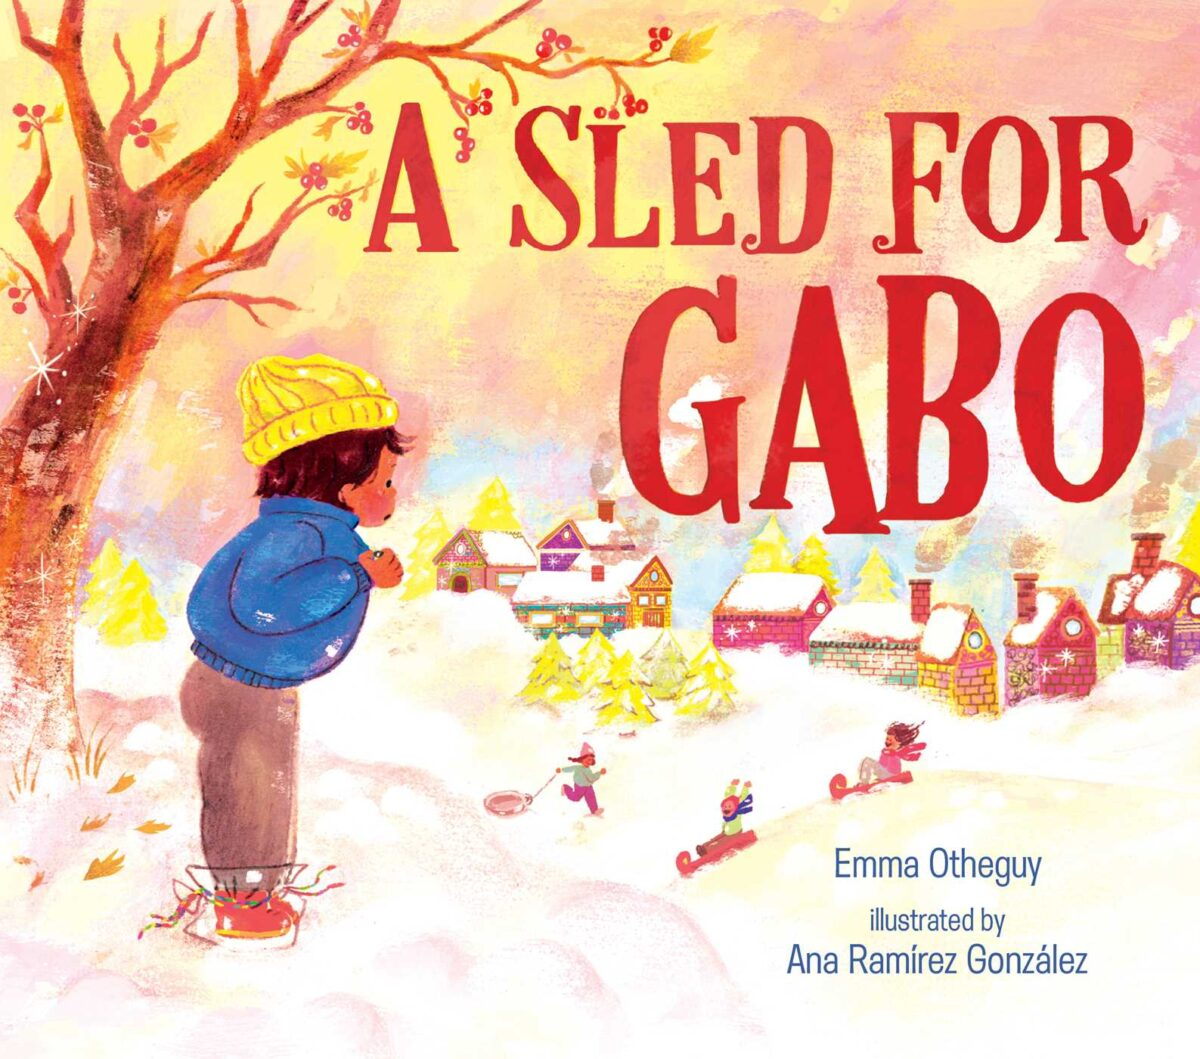 Book cover for A Sled for Gabo by Emma Otheguy